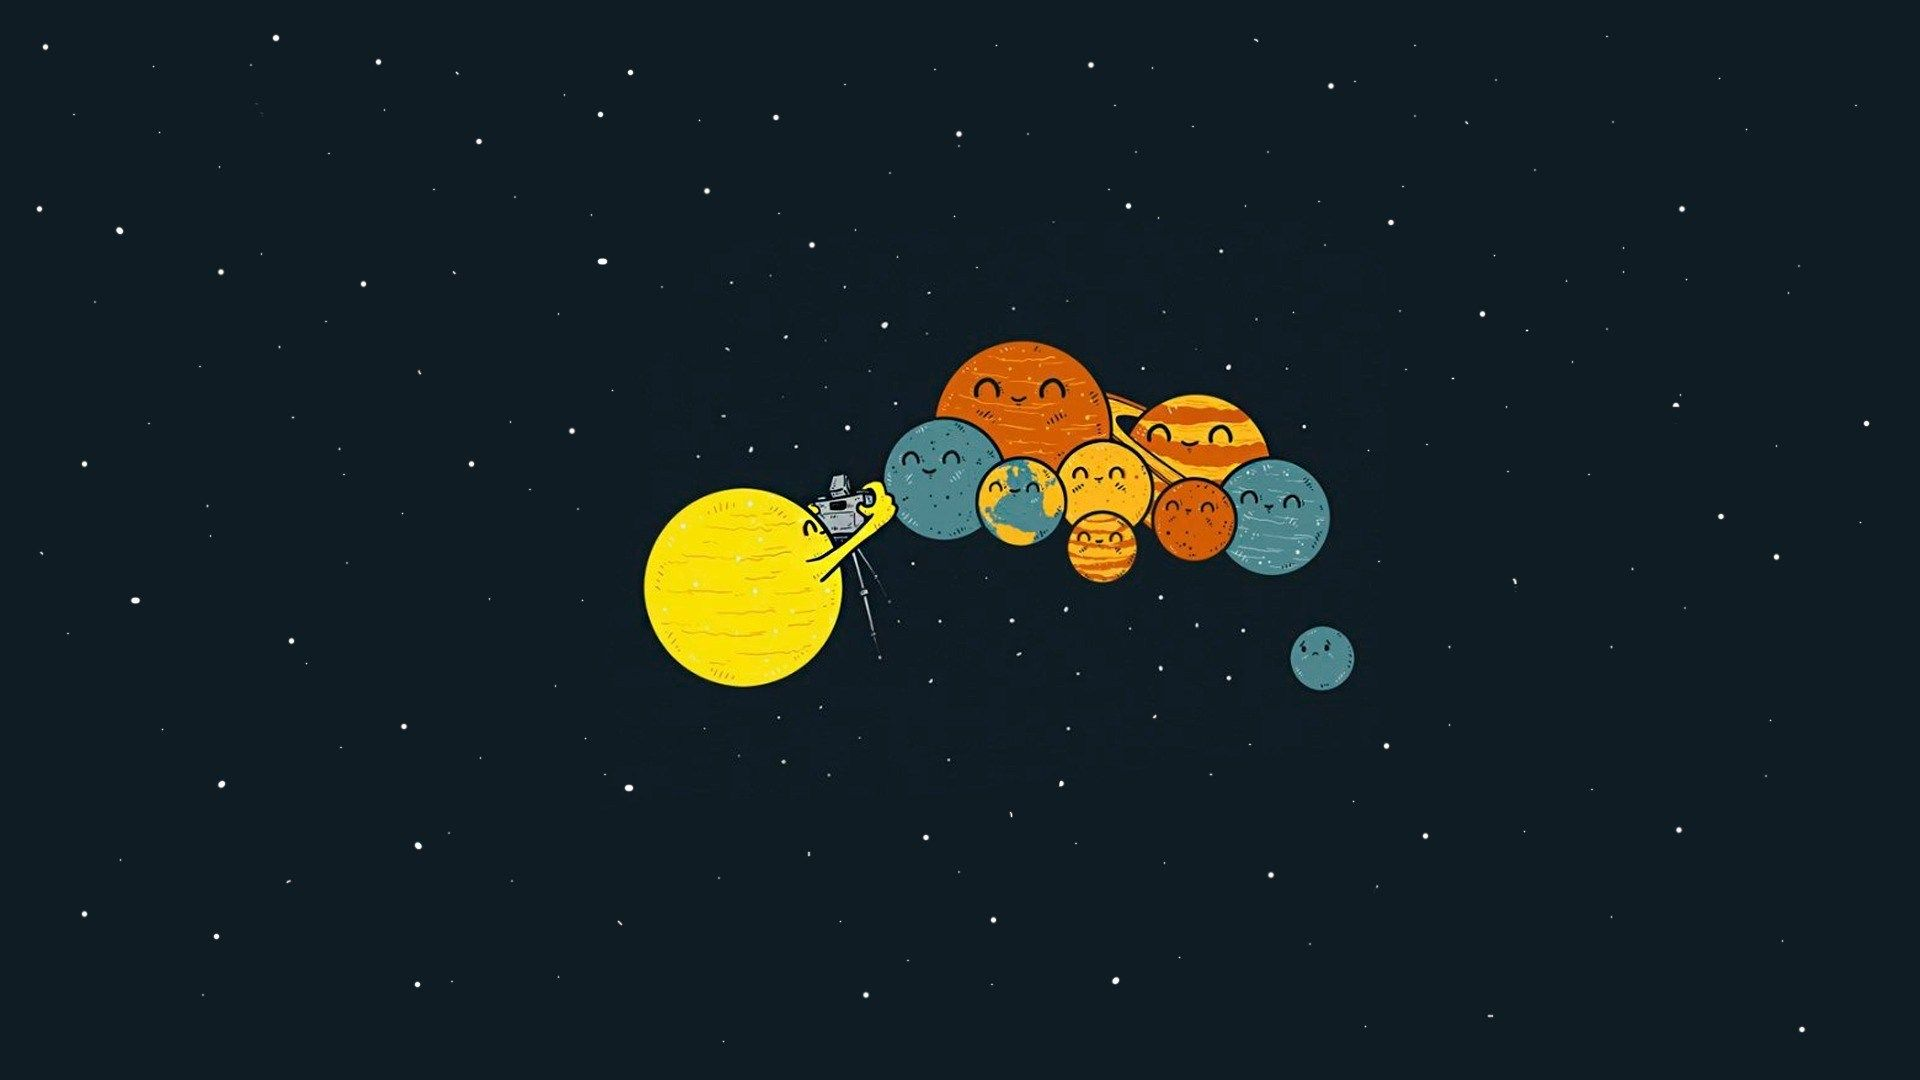 1920x1080 space Wallpaper Collection JPG 98 kB Cute